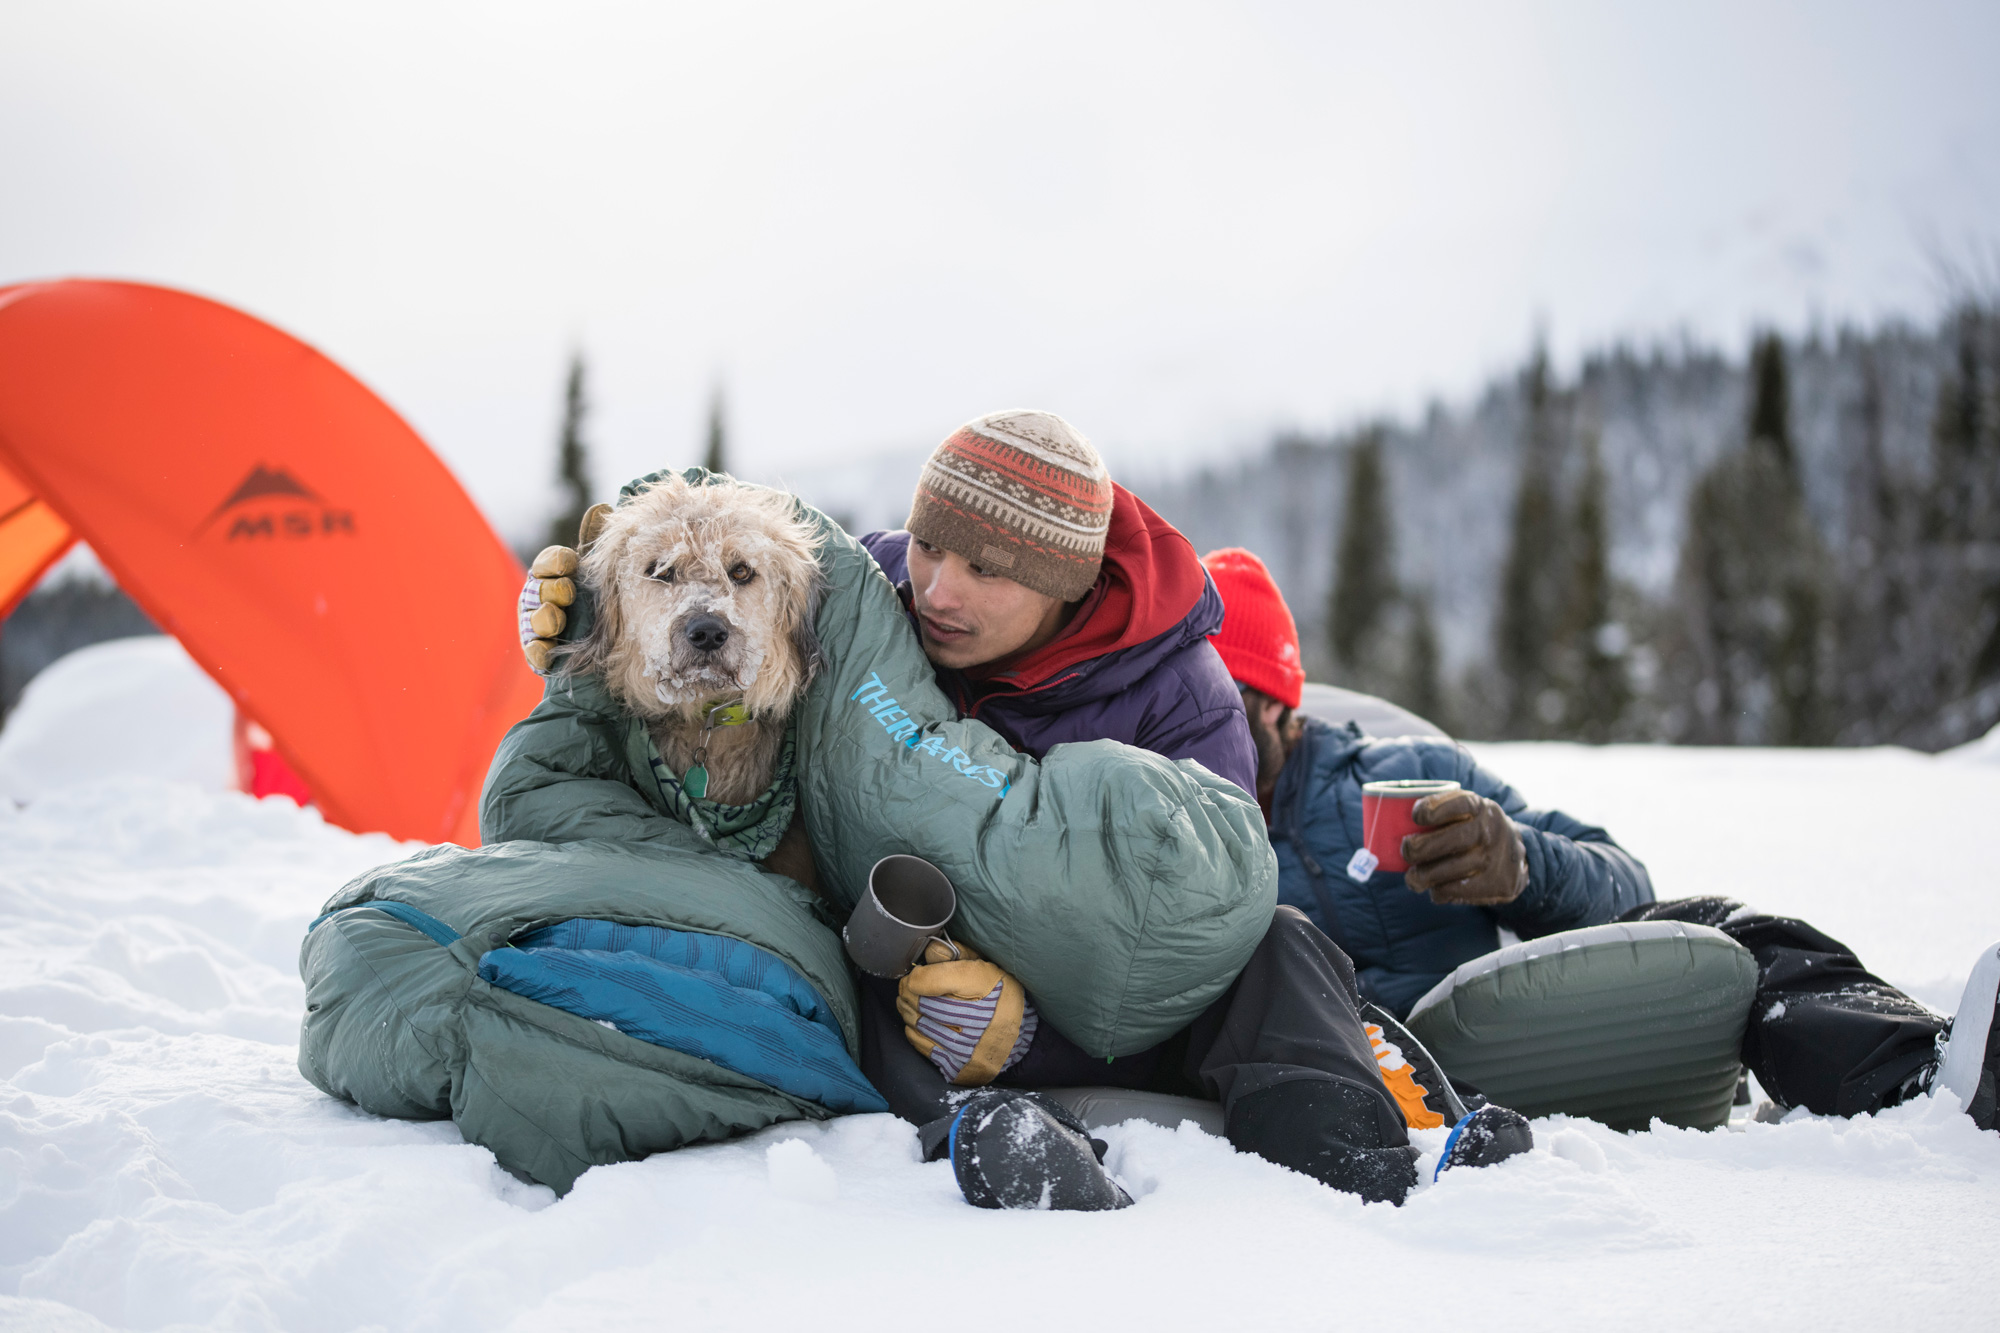 snow camping with dog